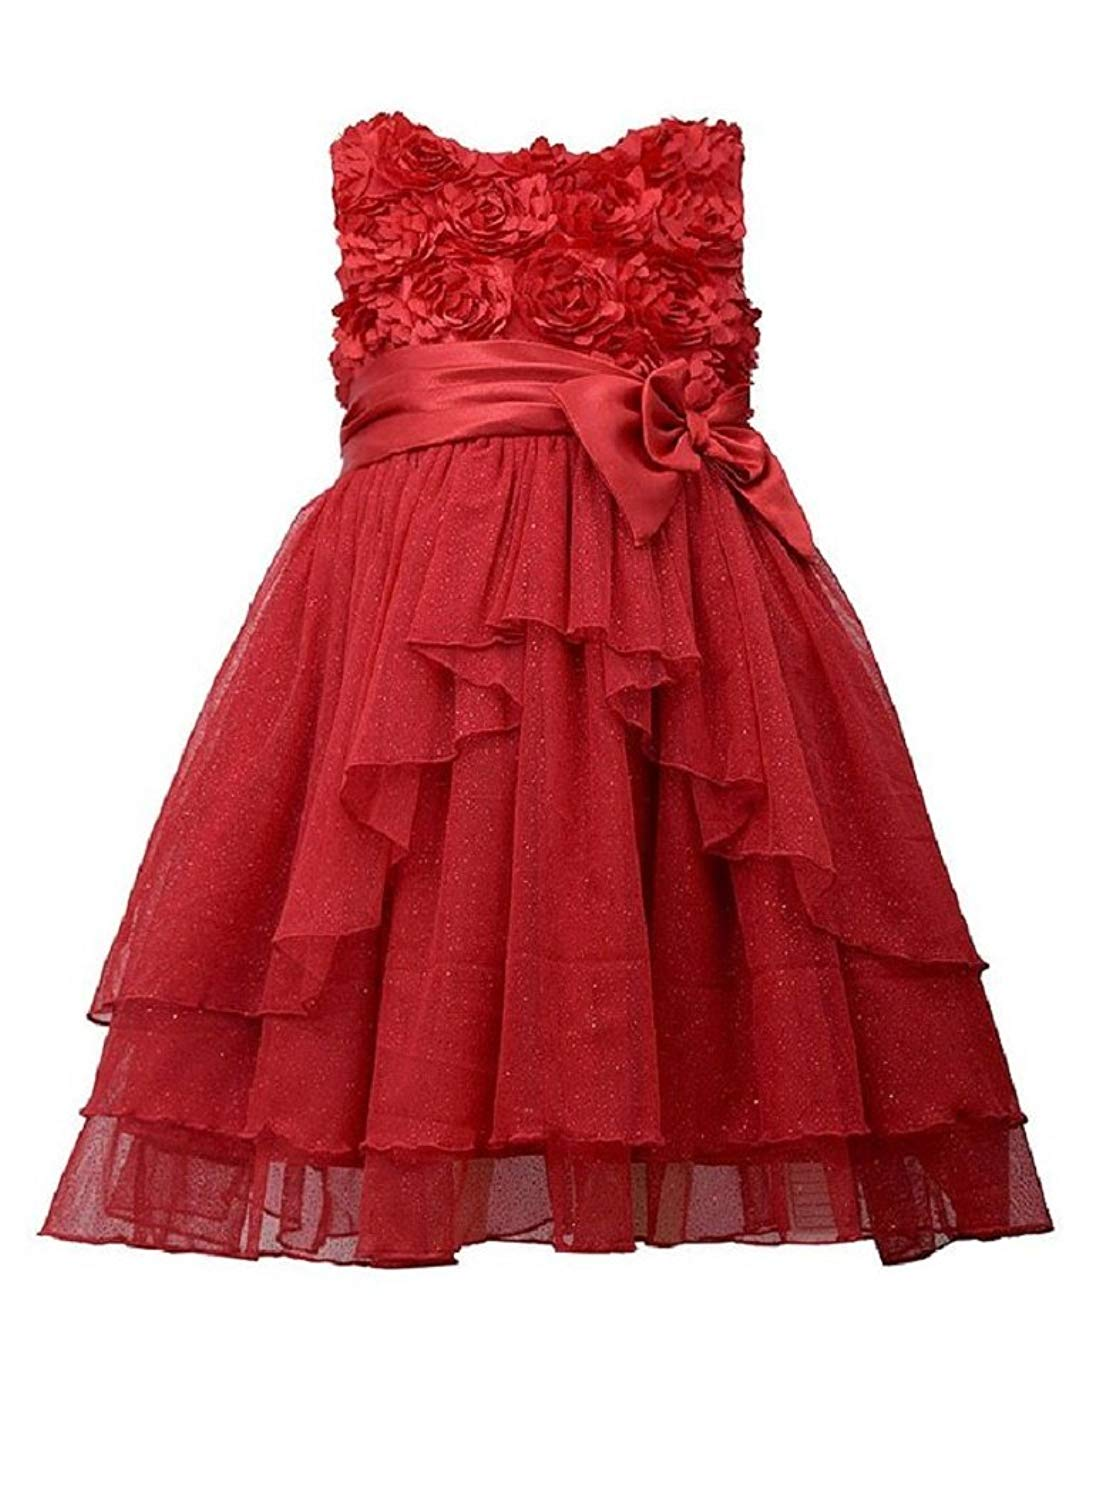 12dbab883 Buy Bonnie Jean Girls Bonaz Sequins Mesh Holiday Dress, Red, 4 - 6X ...